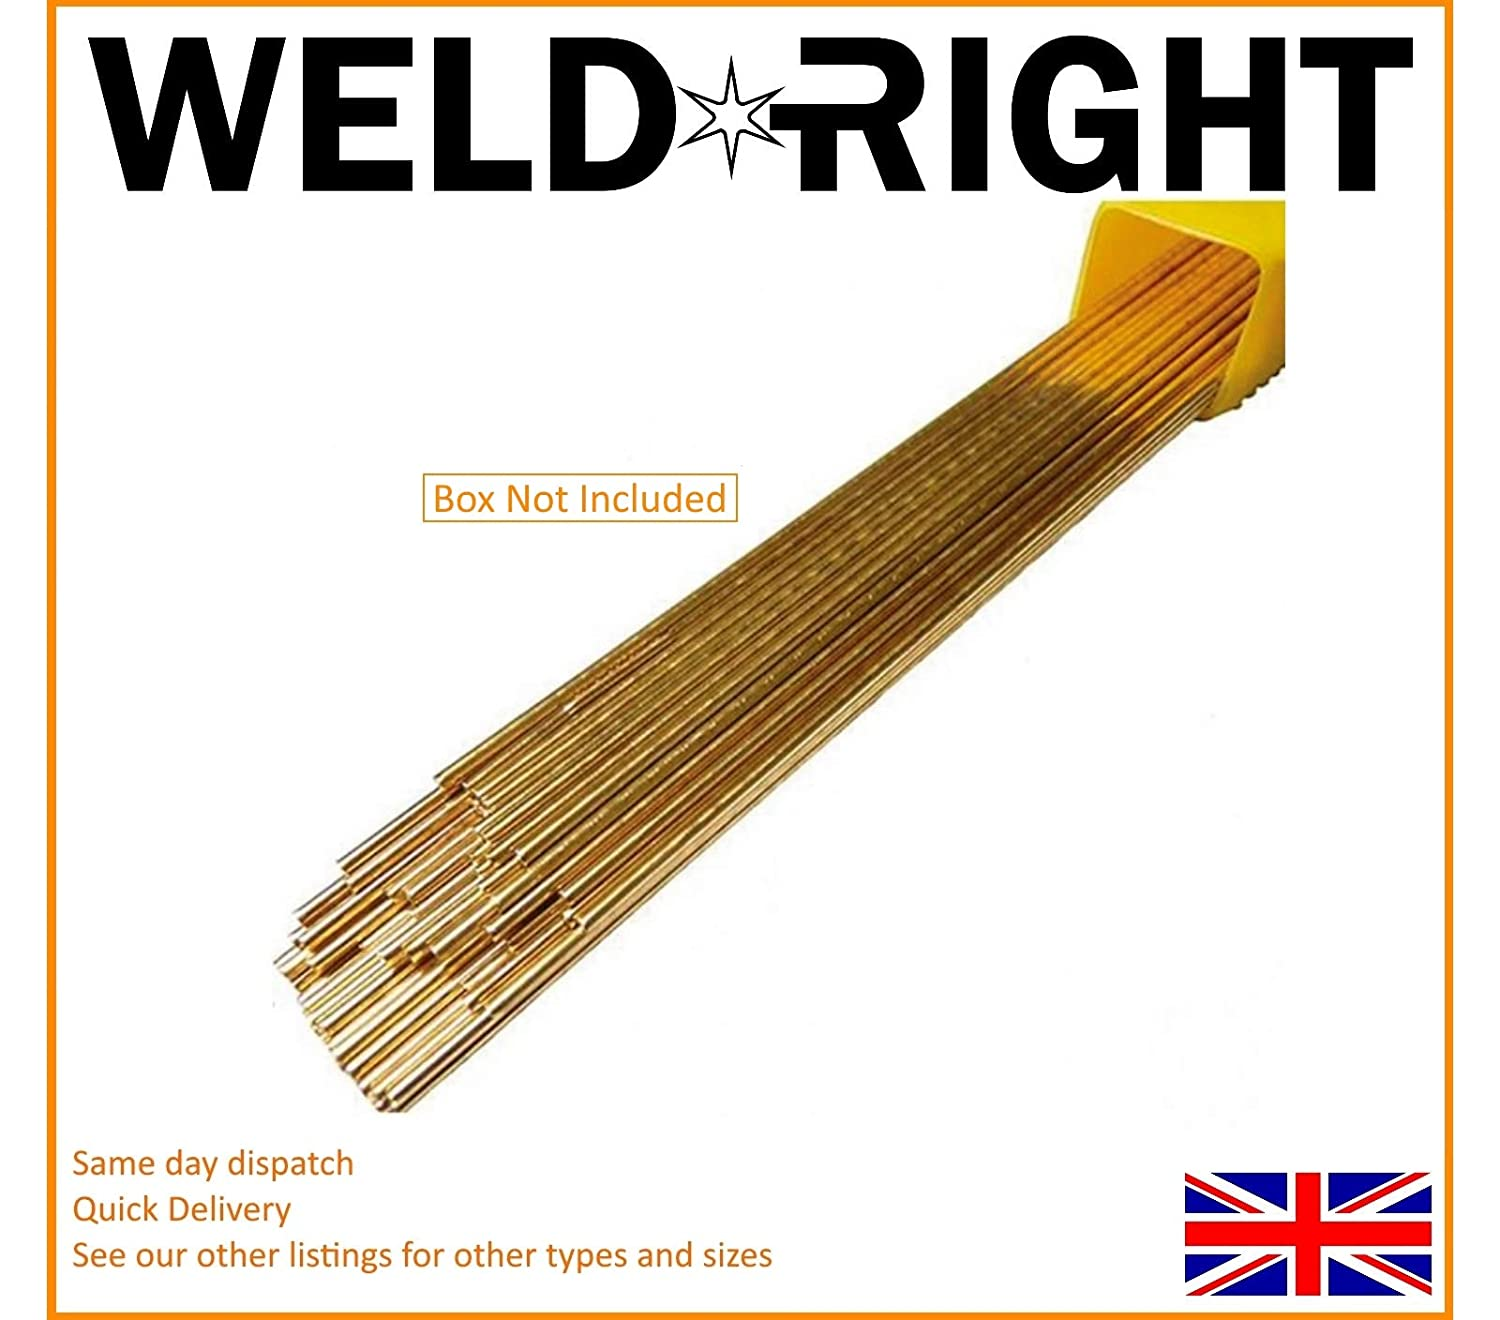 Weld Right - Sifbronze No. 1 Brazing Welding Rods 1.6mm x 20 Rods (300mm)